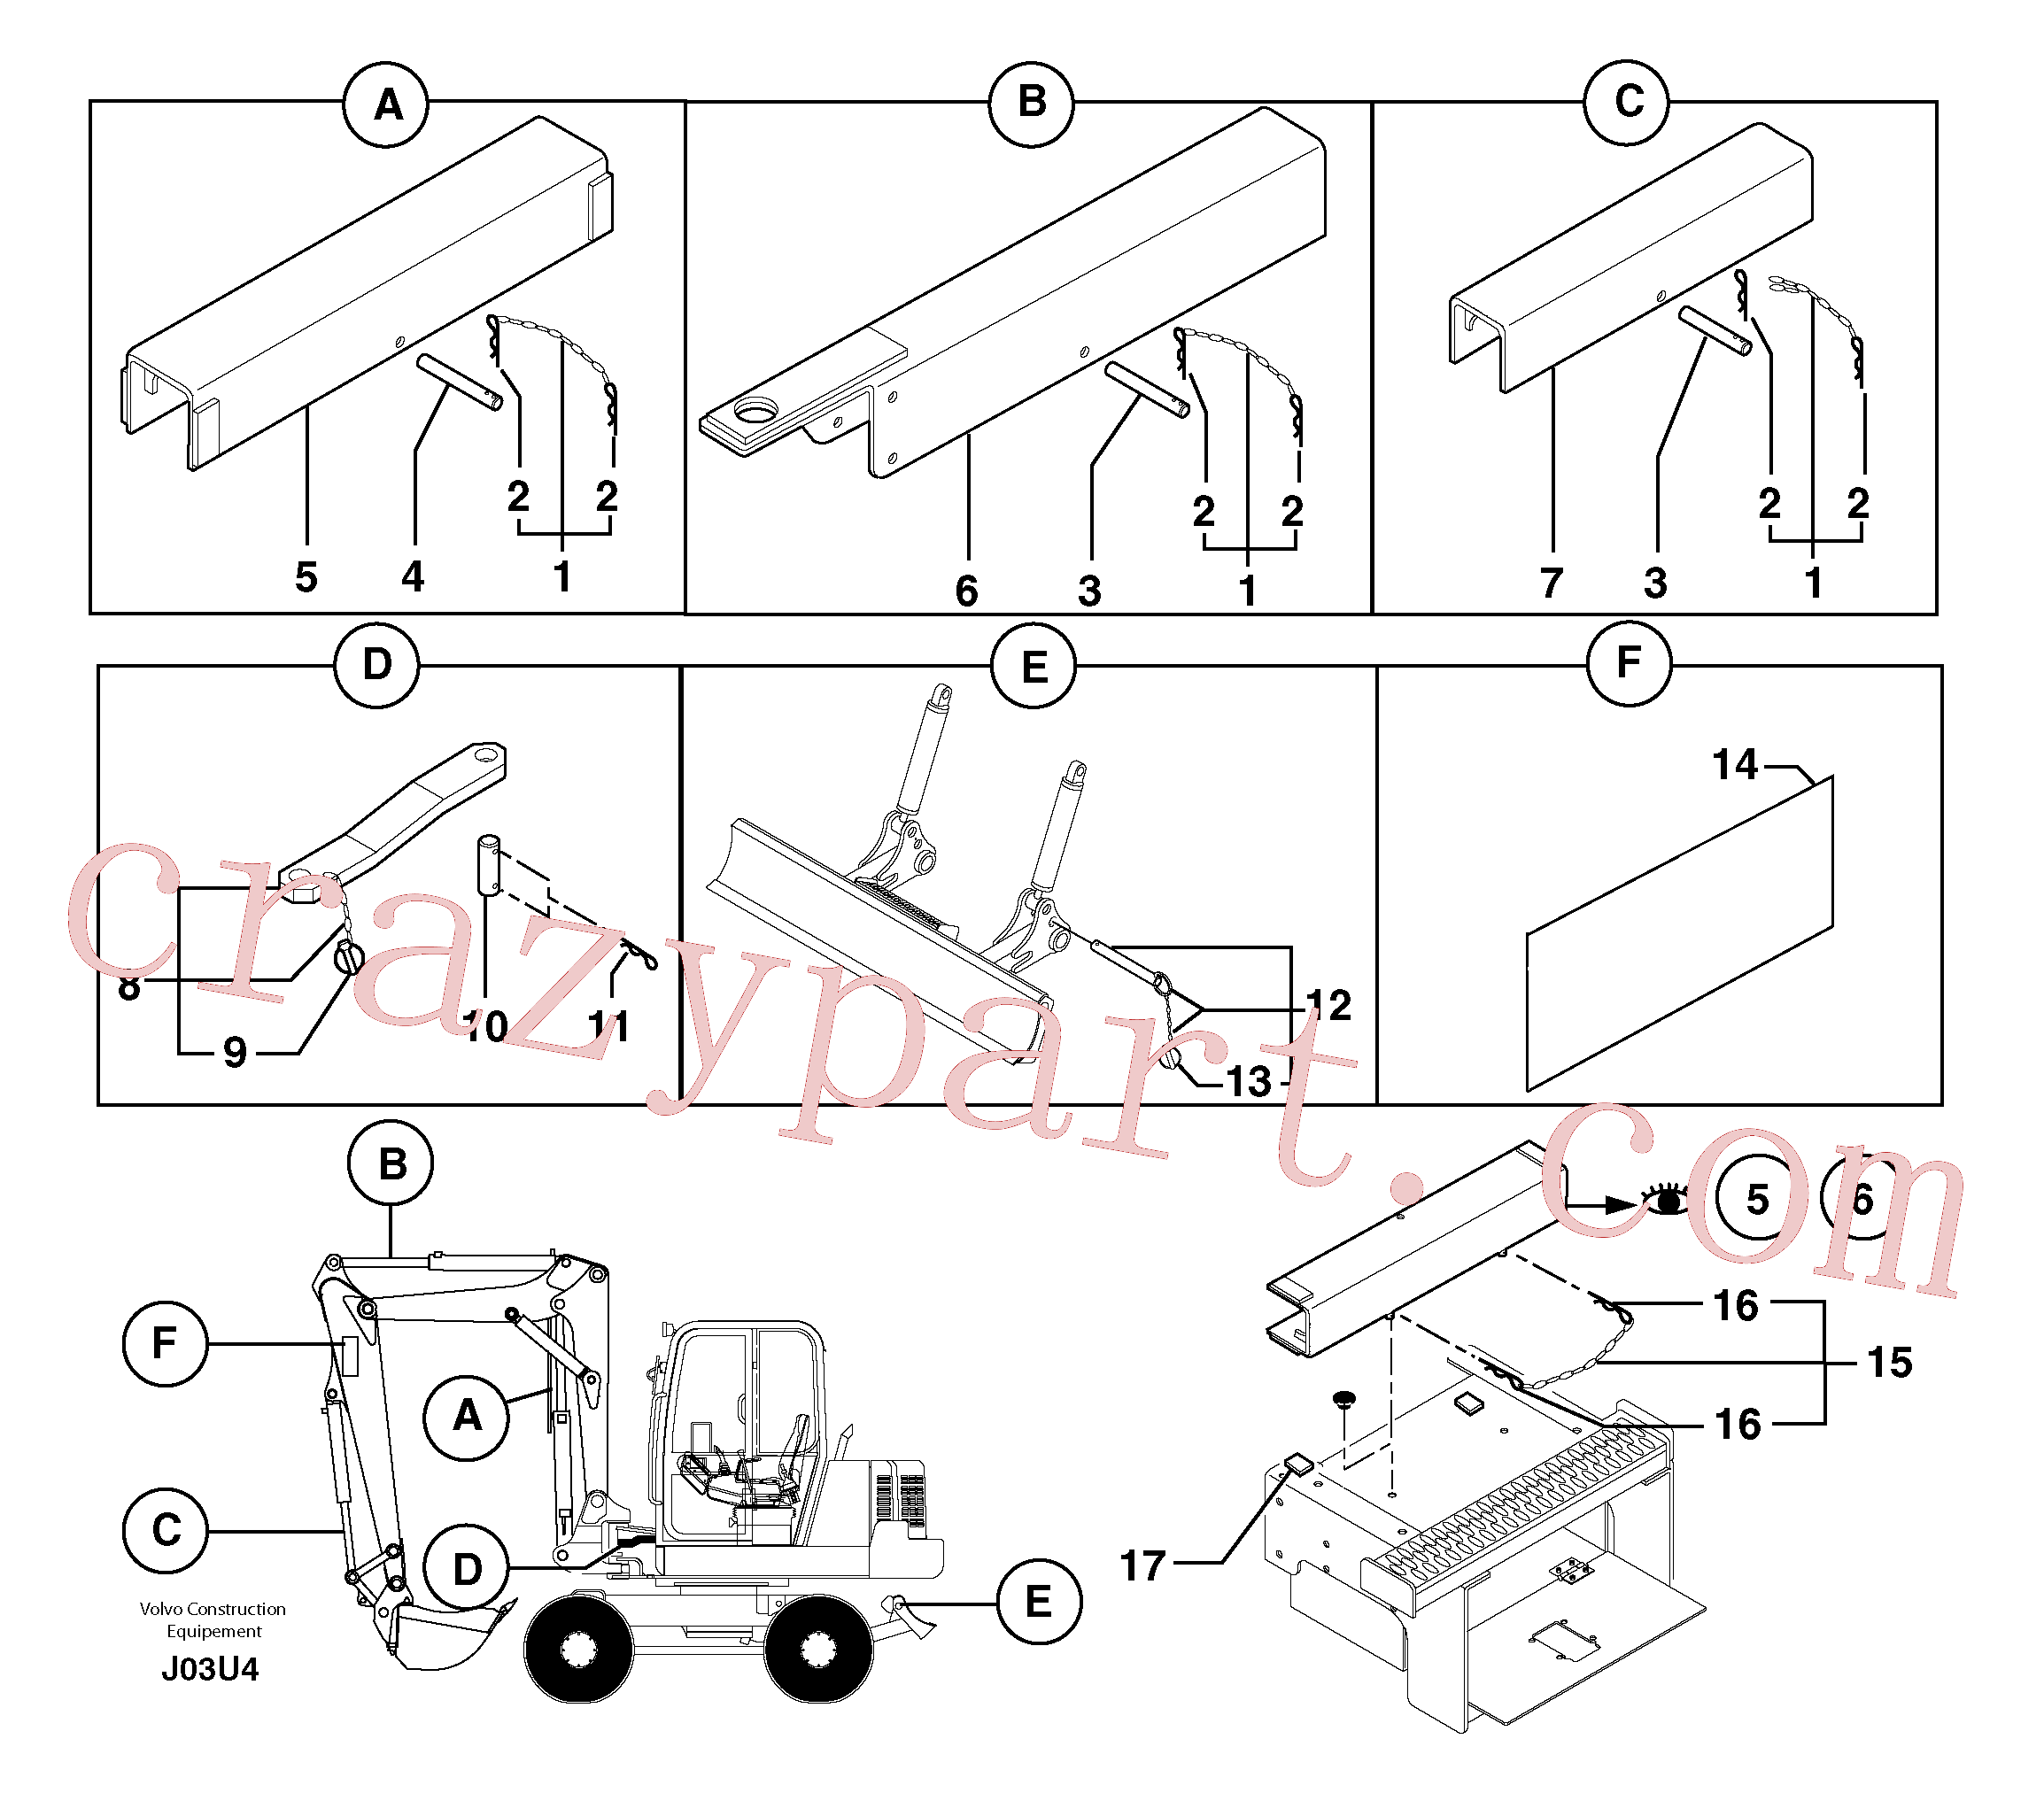 PJ3760091 for Volvo Safety device(J03U4 assembly)